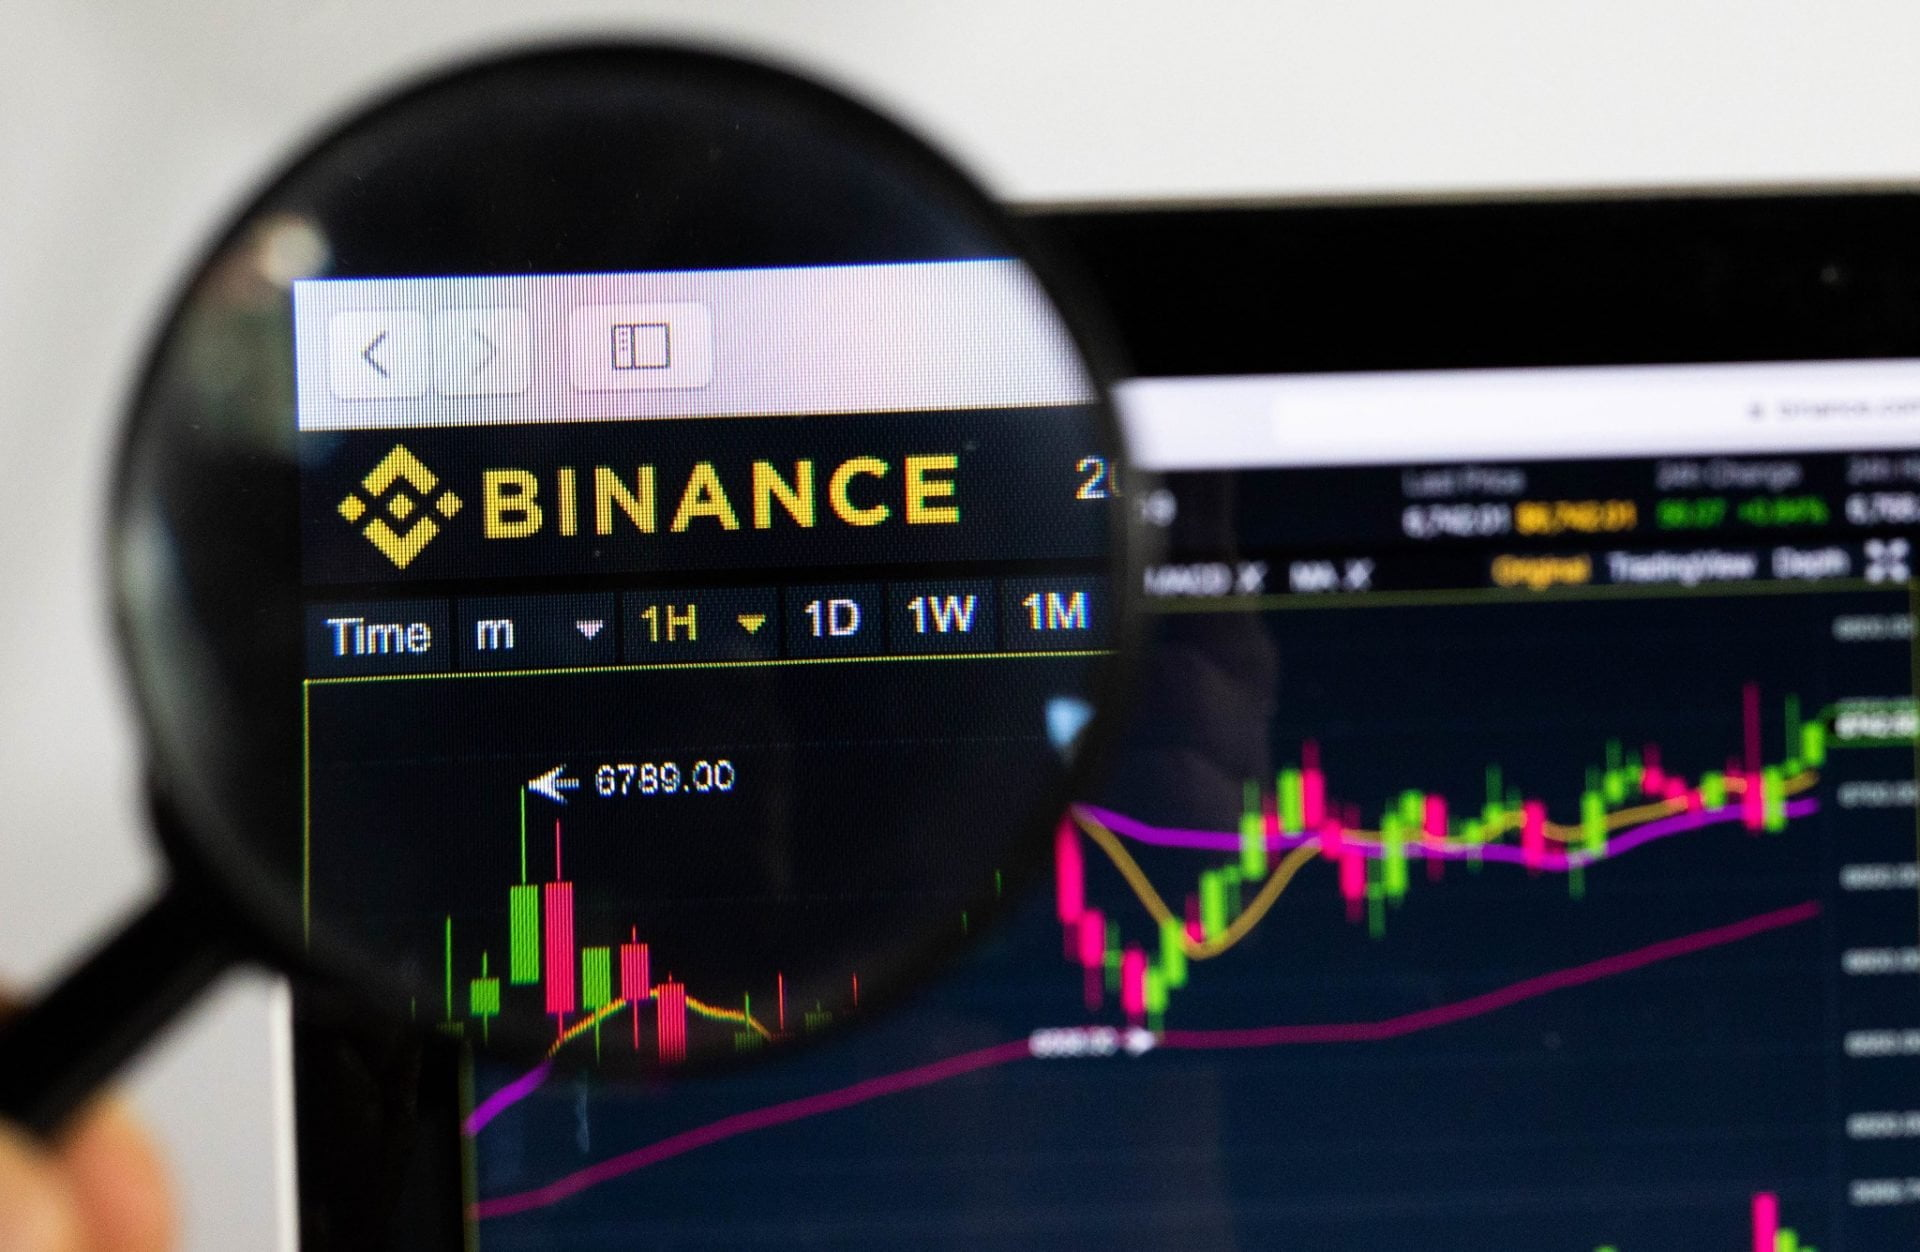 Binance Smart Chain Hits $4.325B in Total Value Locked